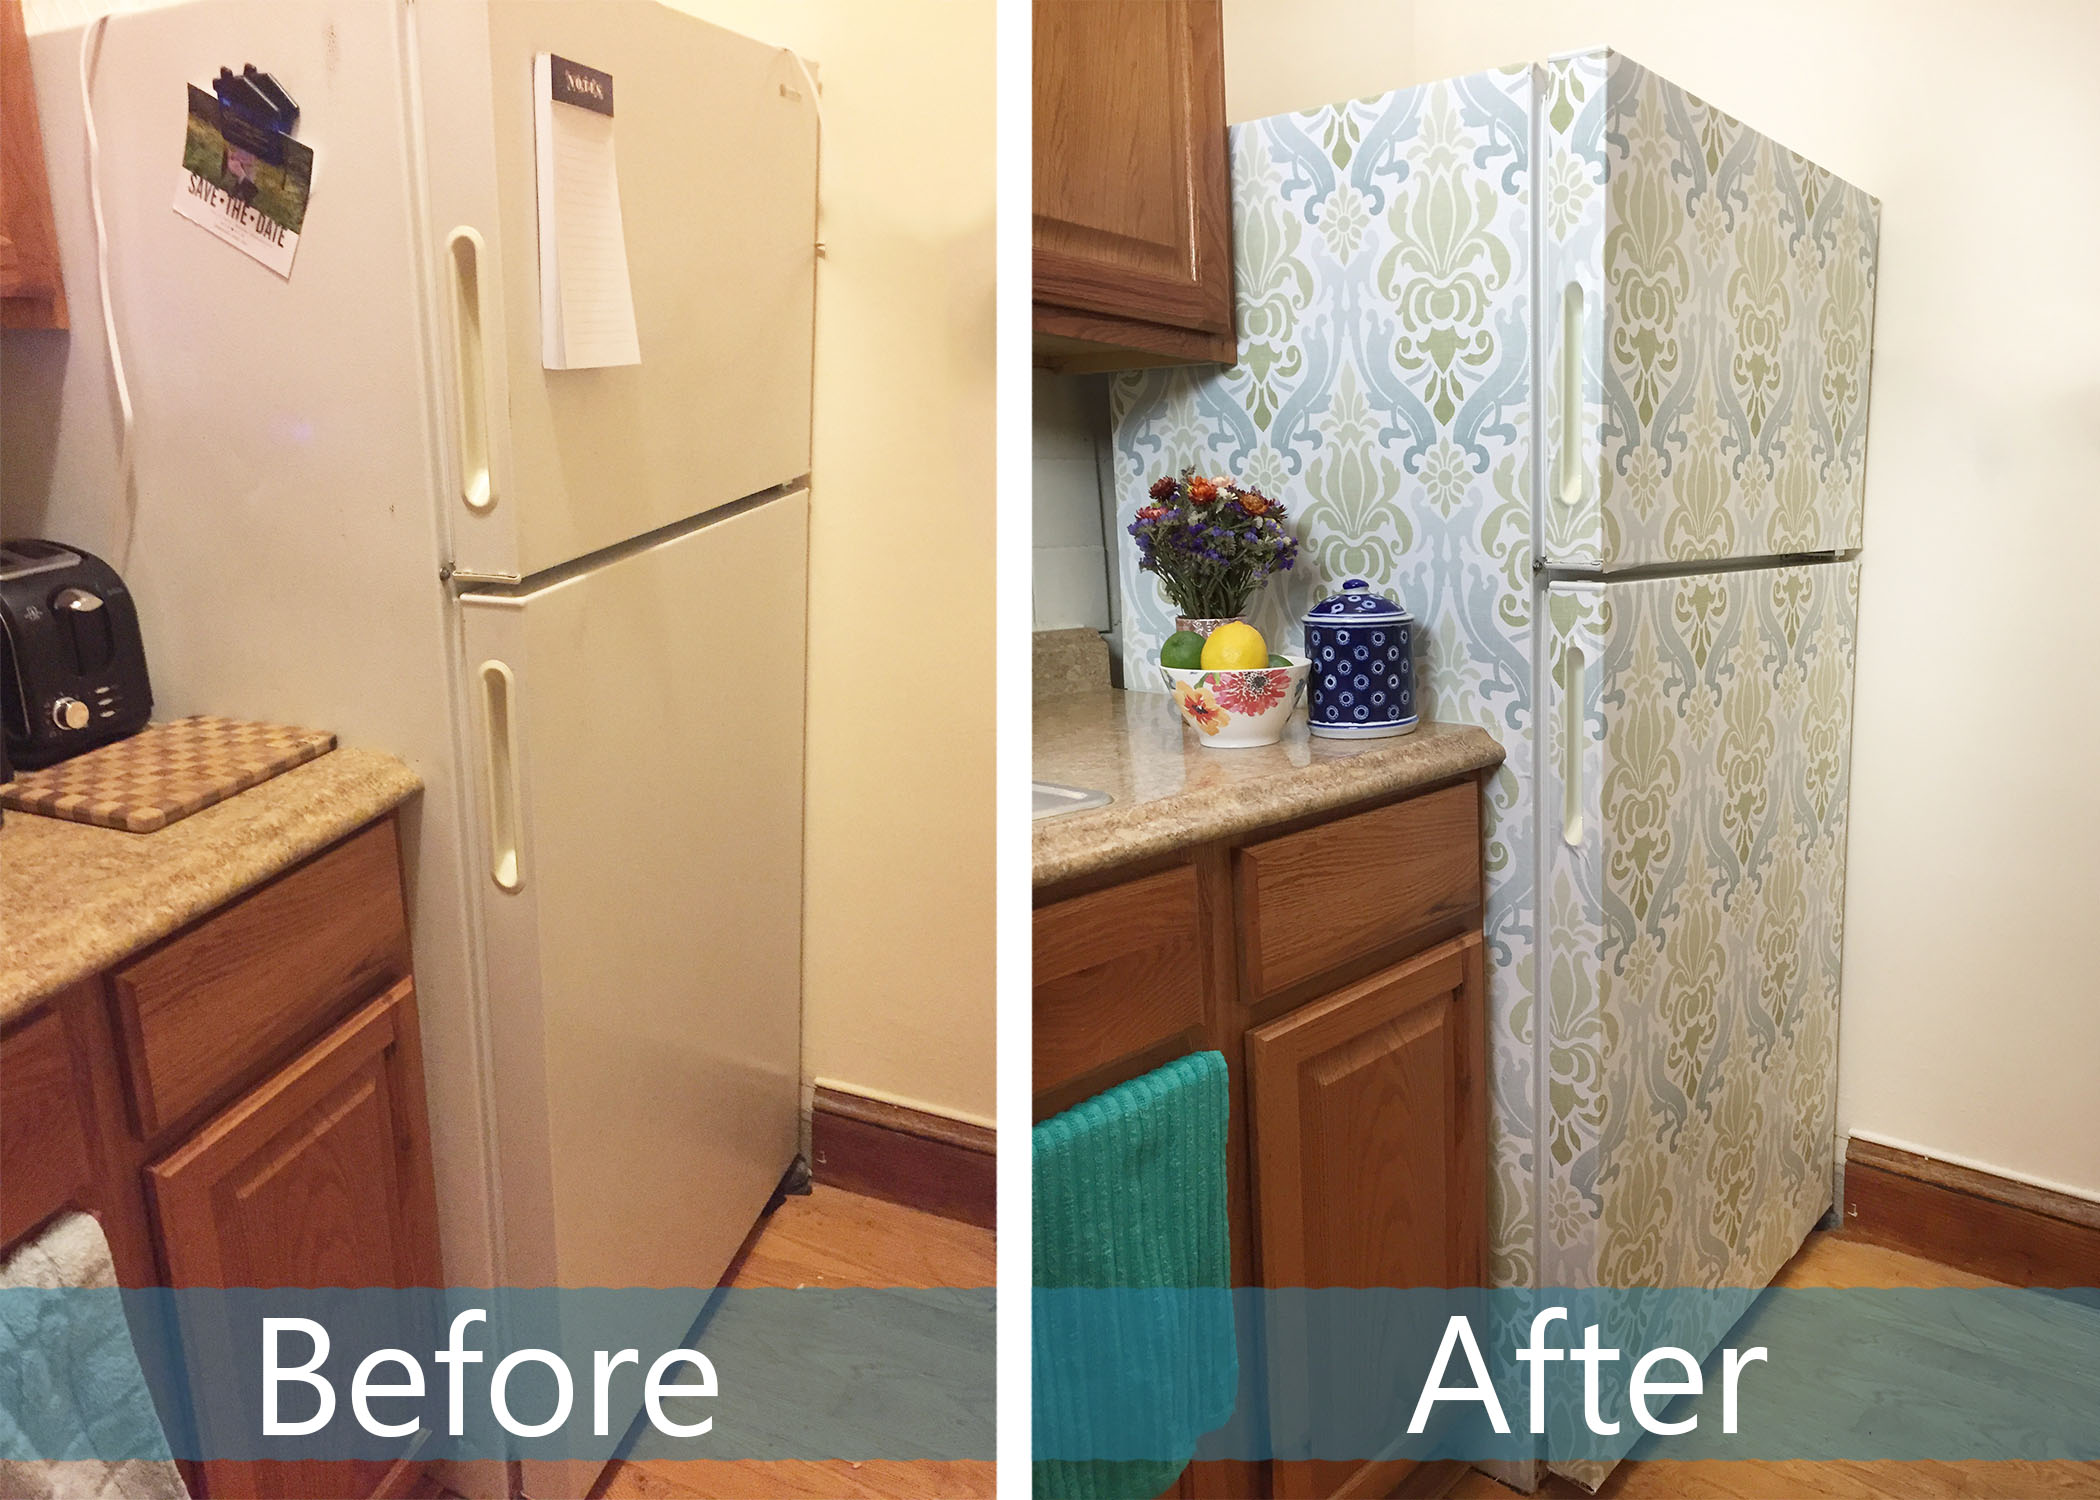 Fridge Before and After